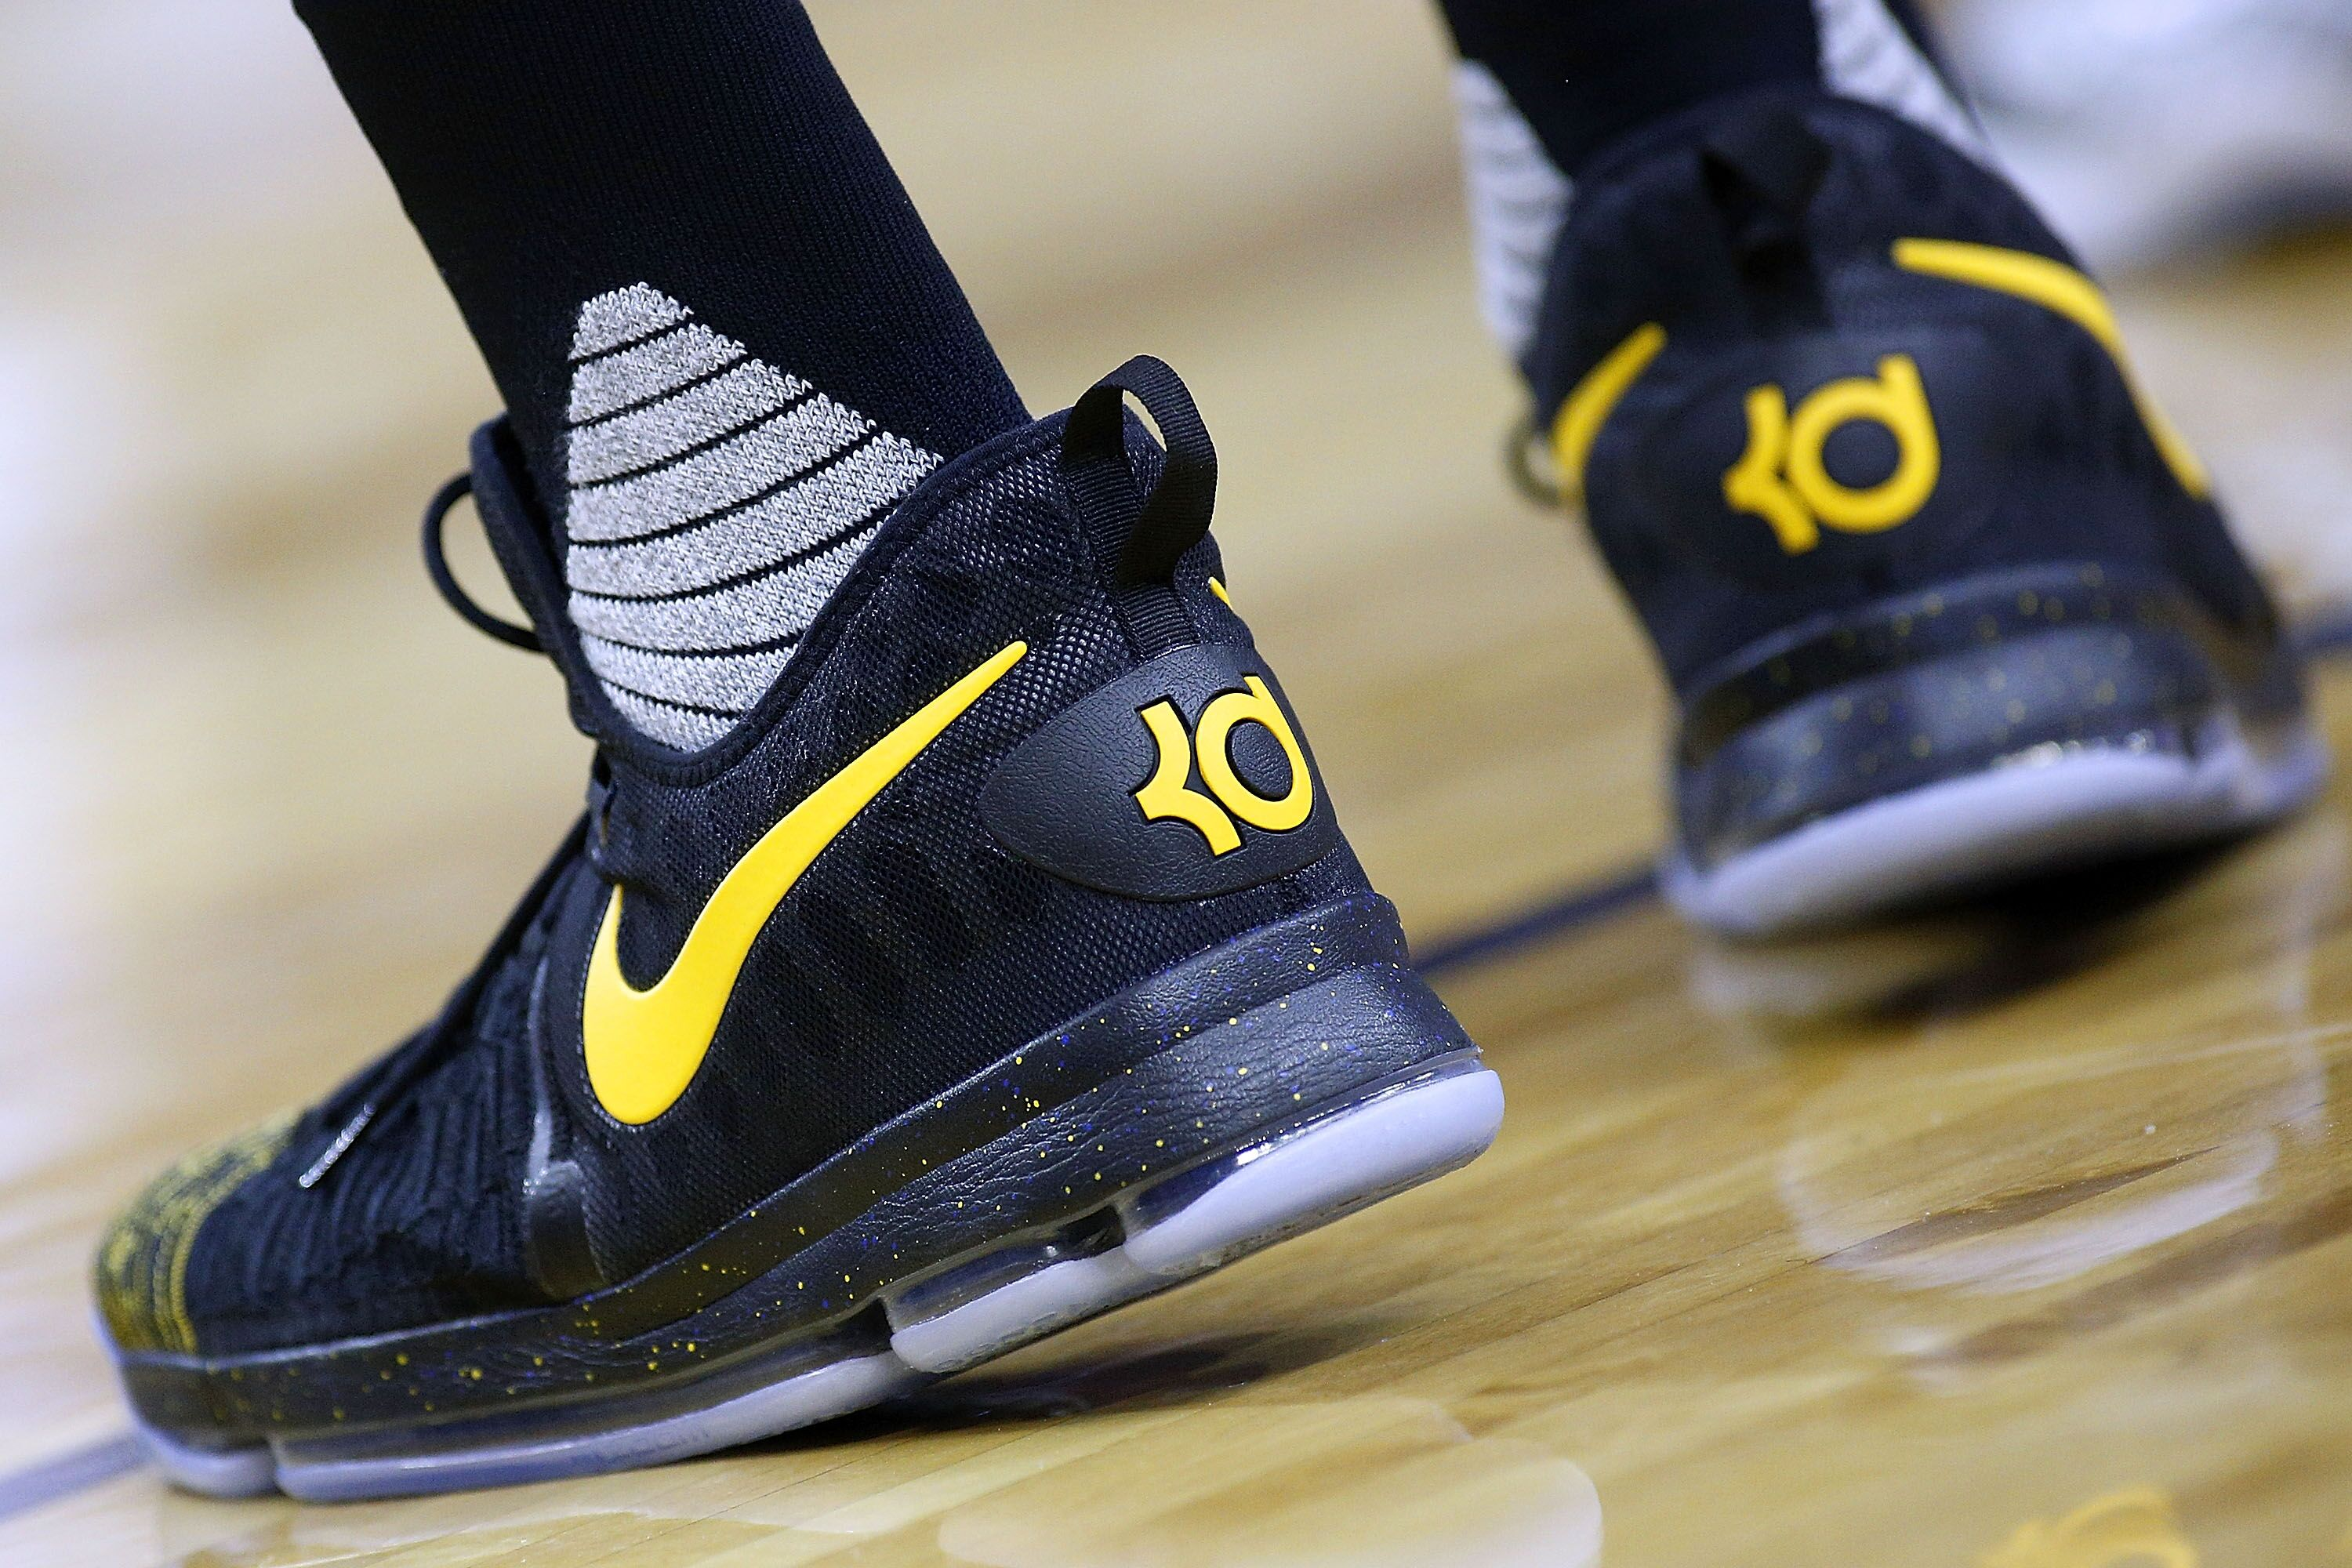 kevin durant shoes - HD3000×2000